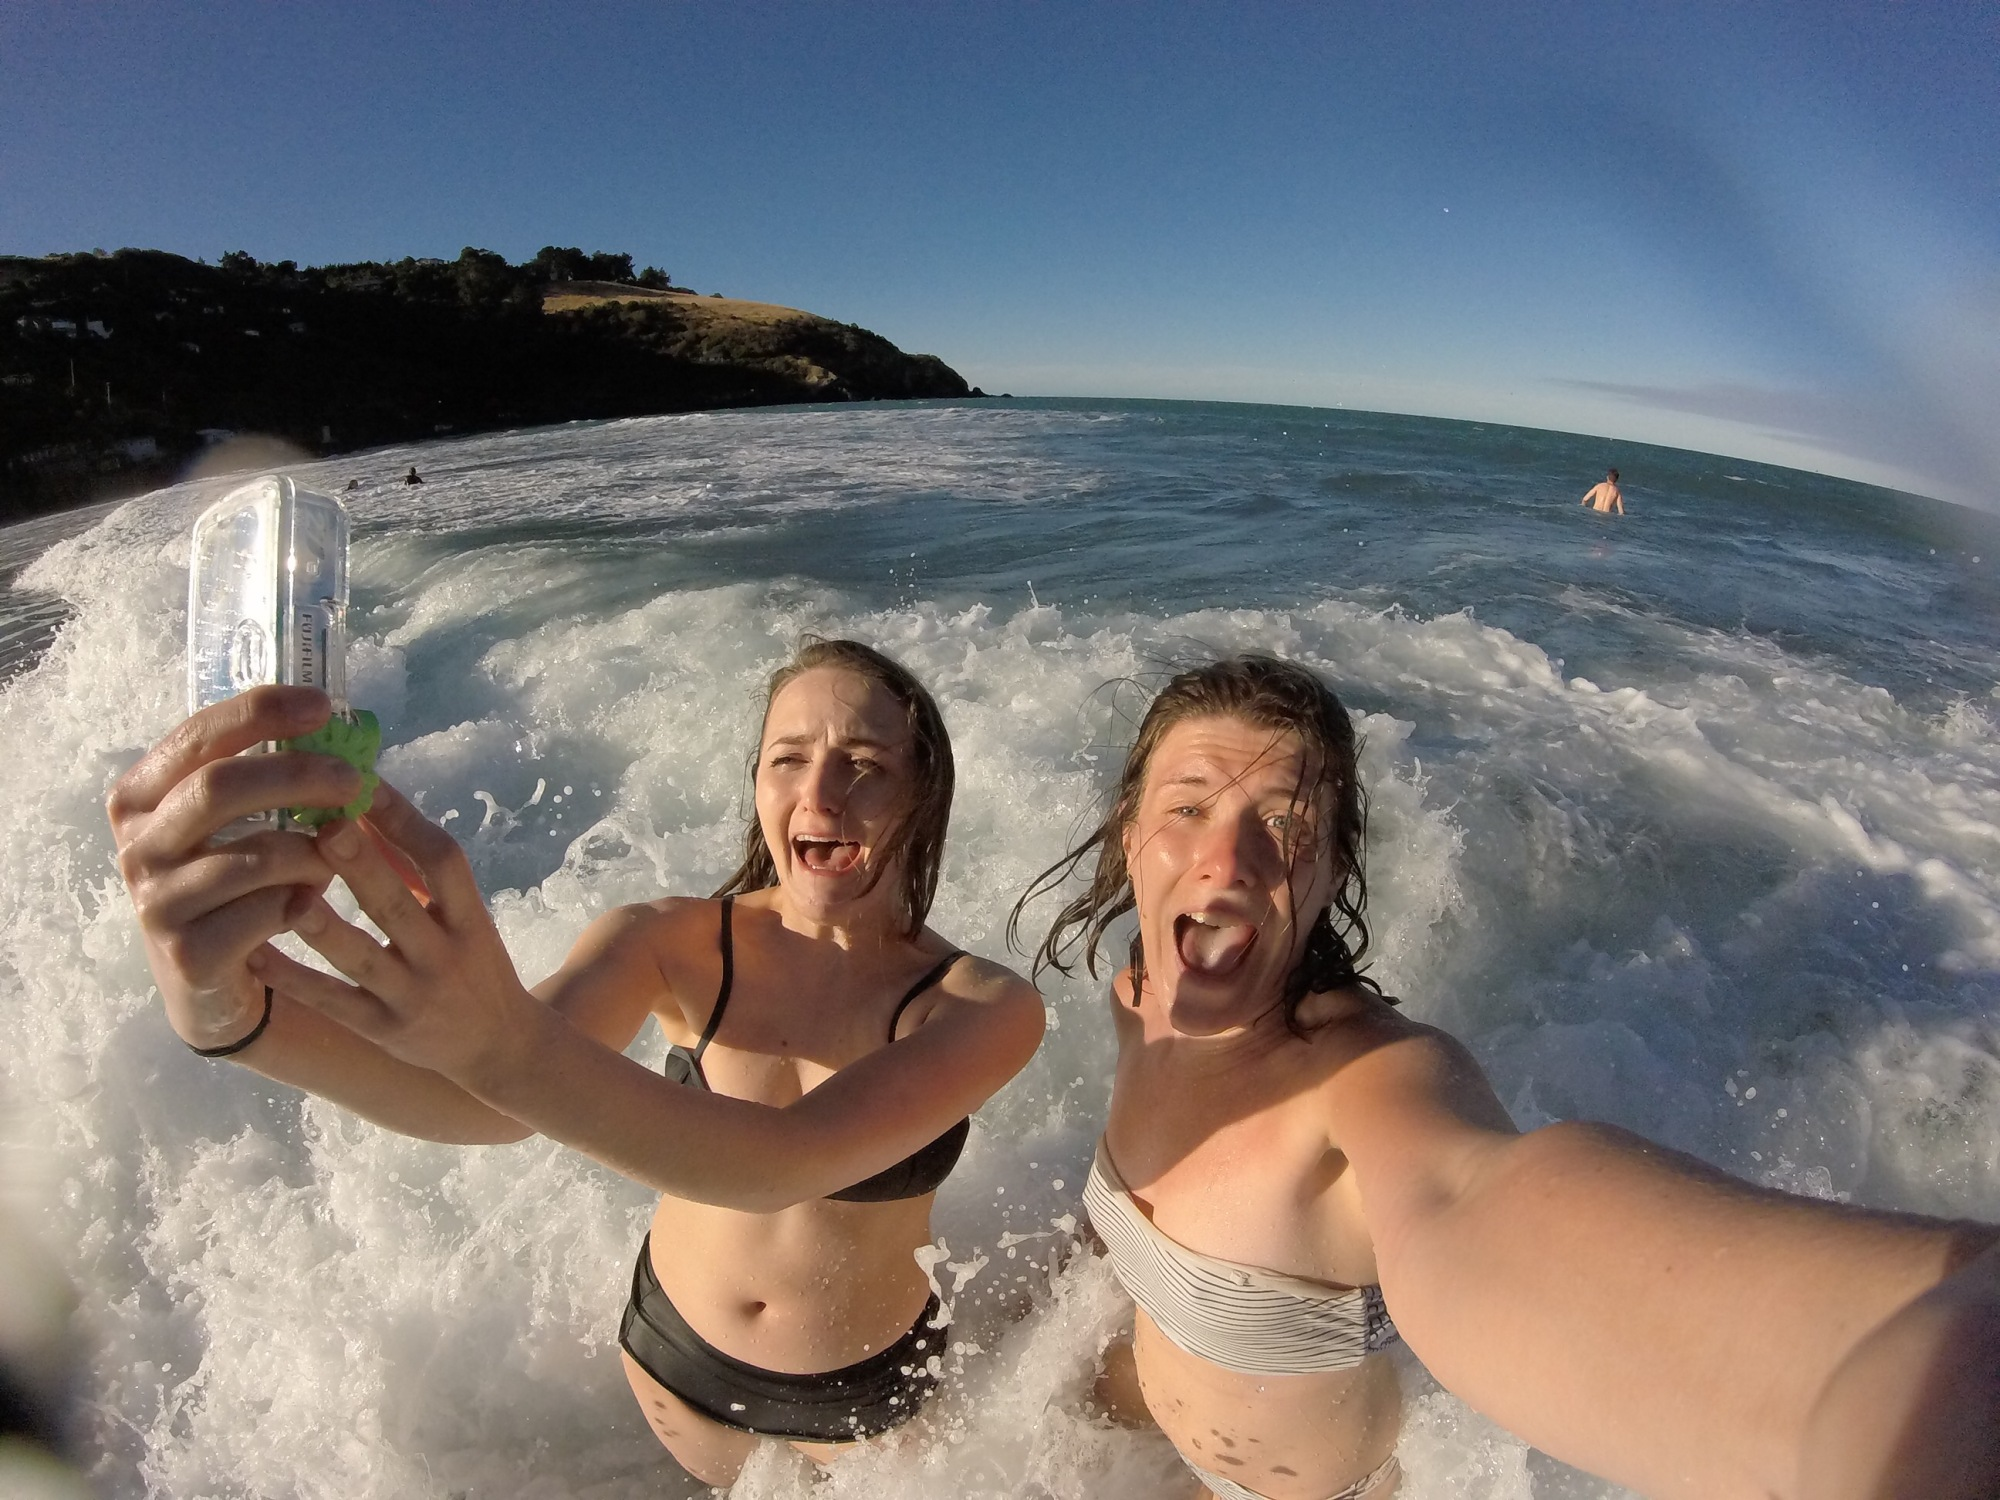 GoPro image on a sunny beach day in Christchurch New Zealand just as a wave hits